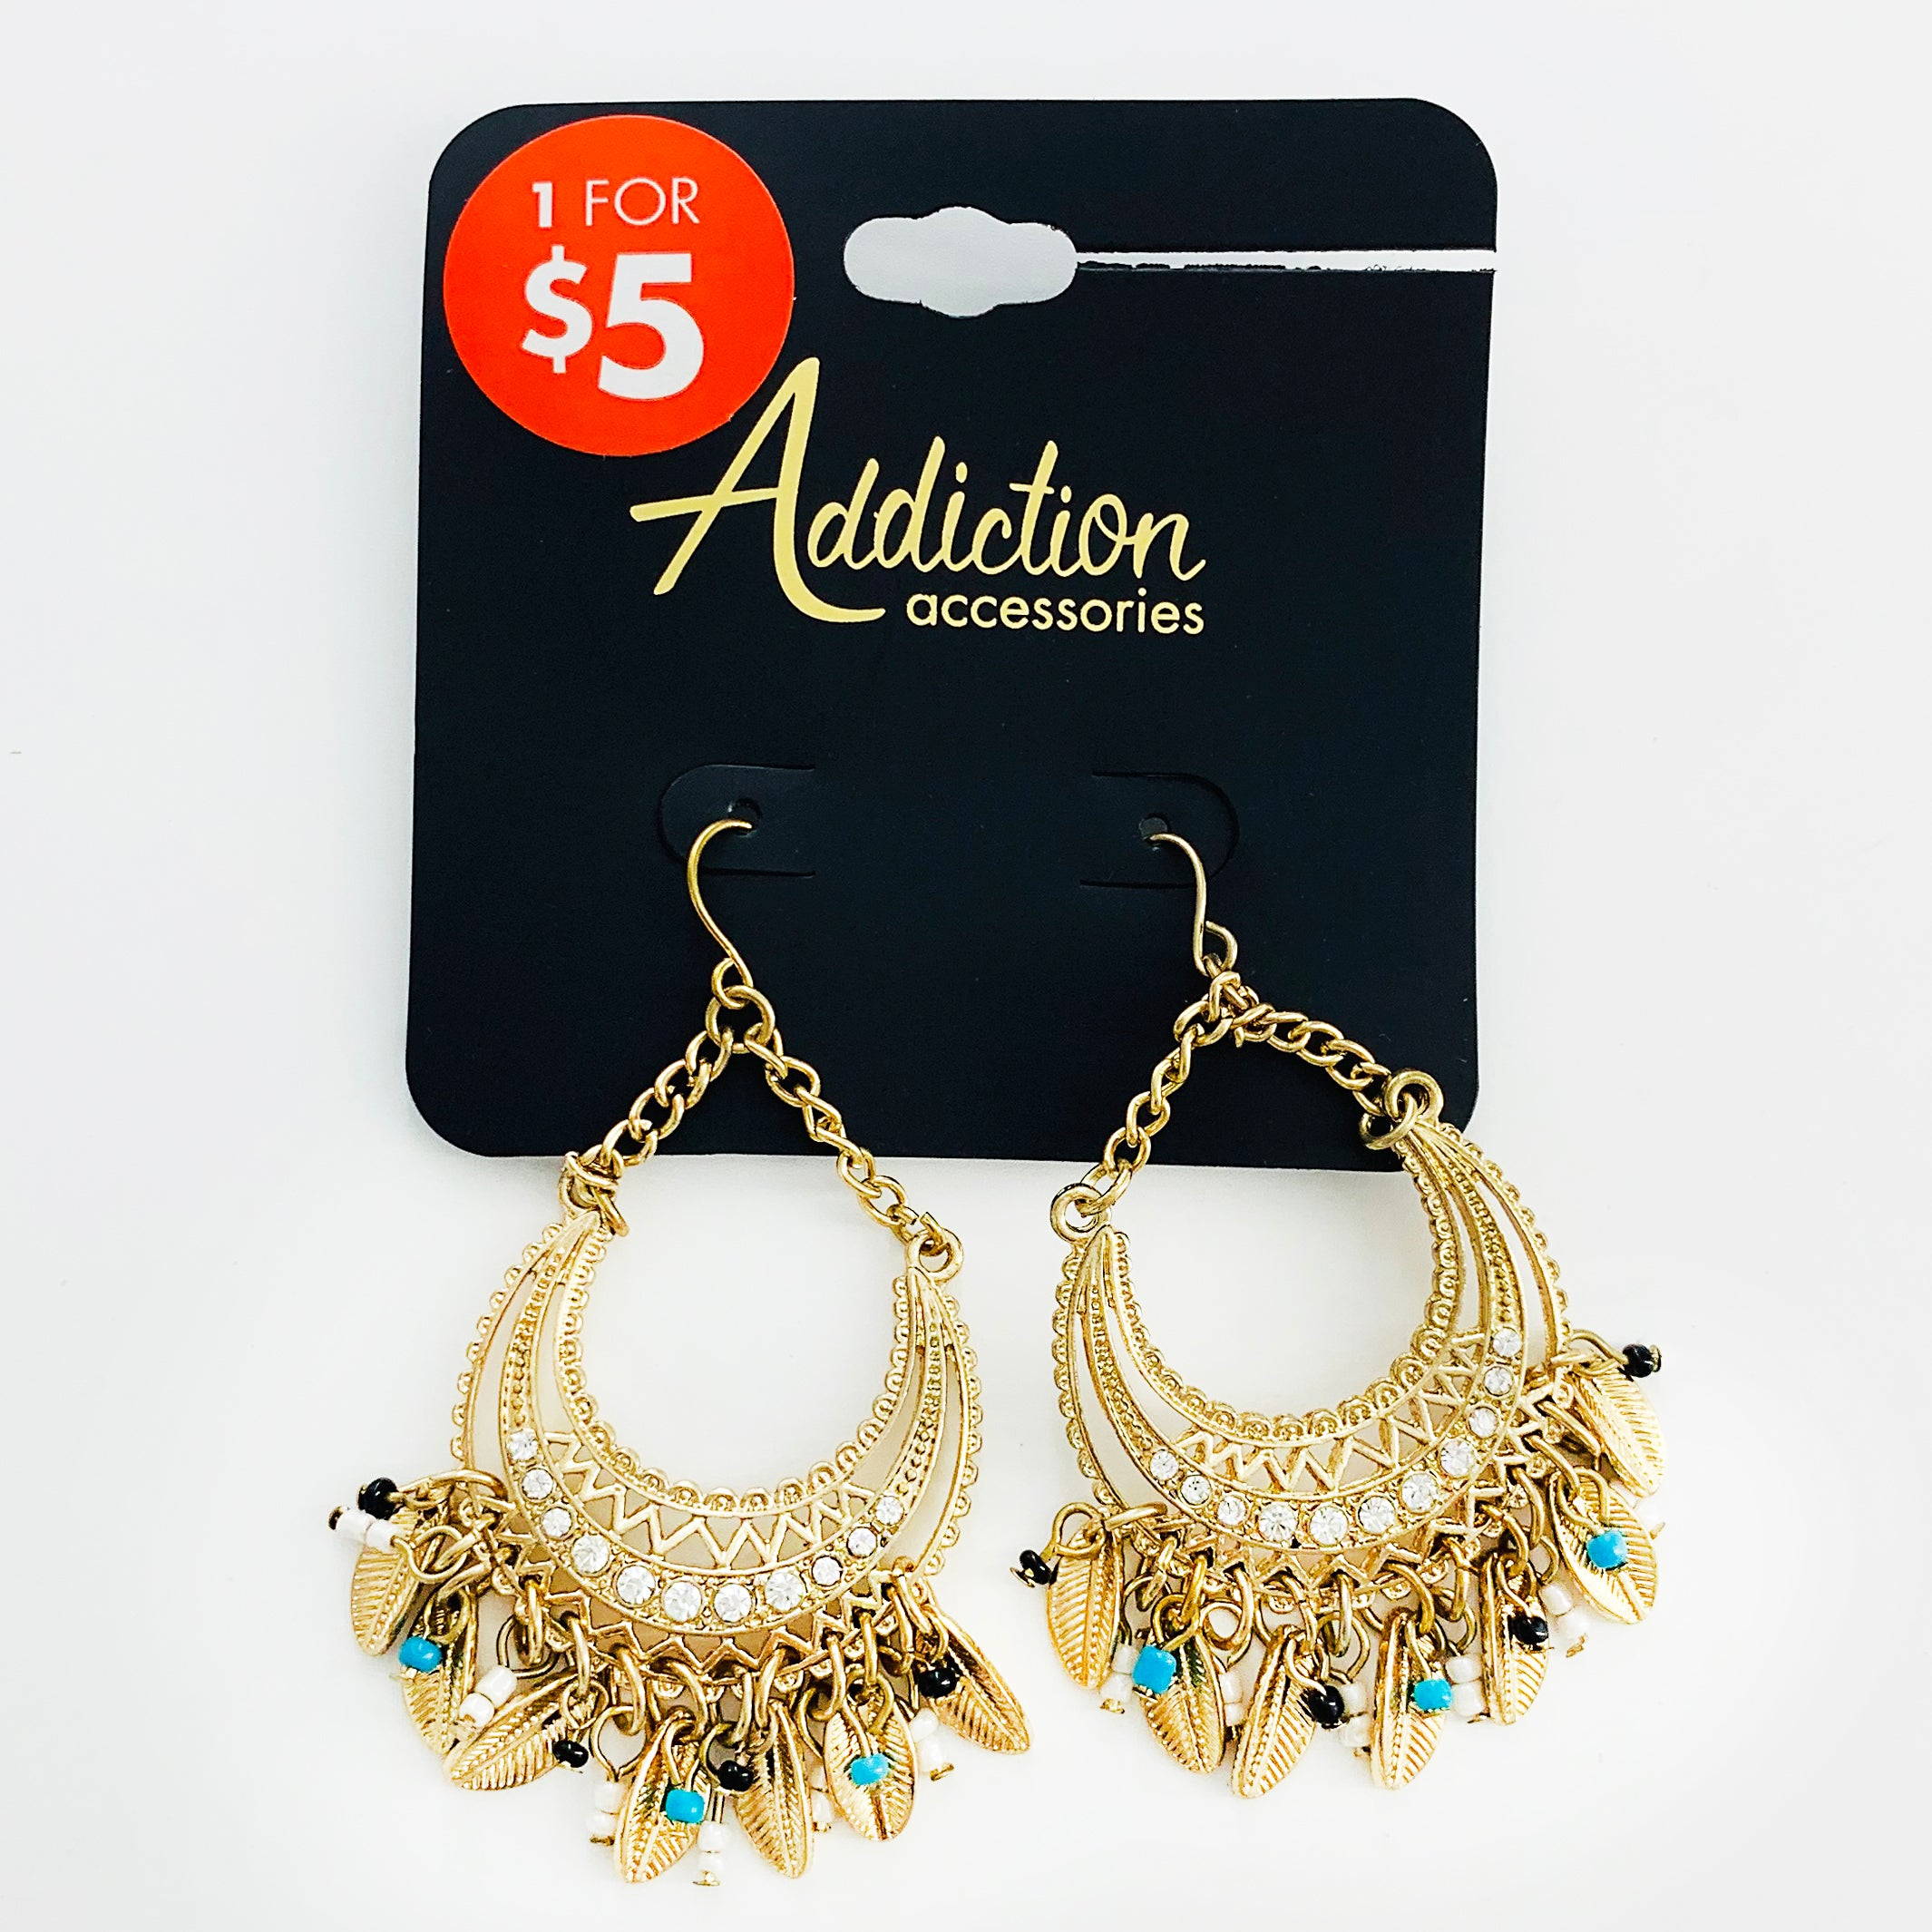 Ethnic-inspired gold earrings with gold leaves